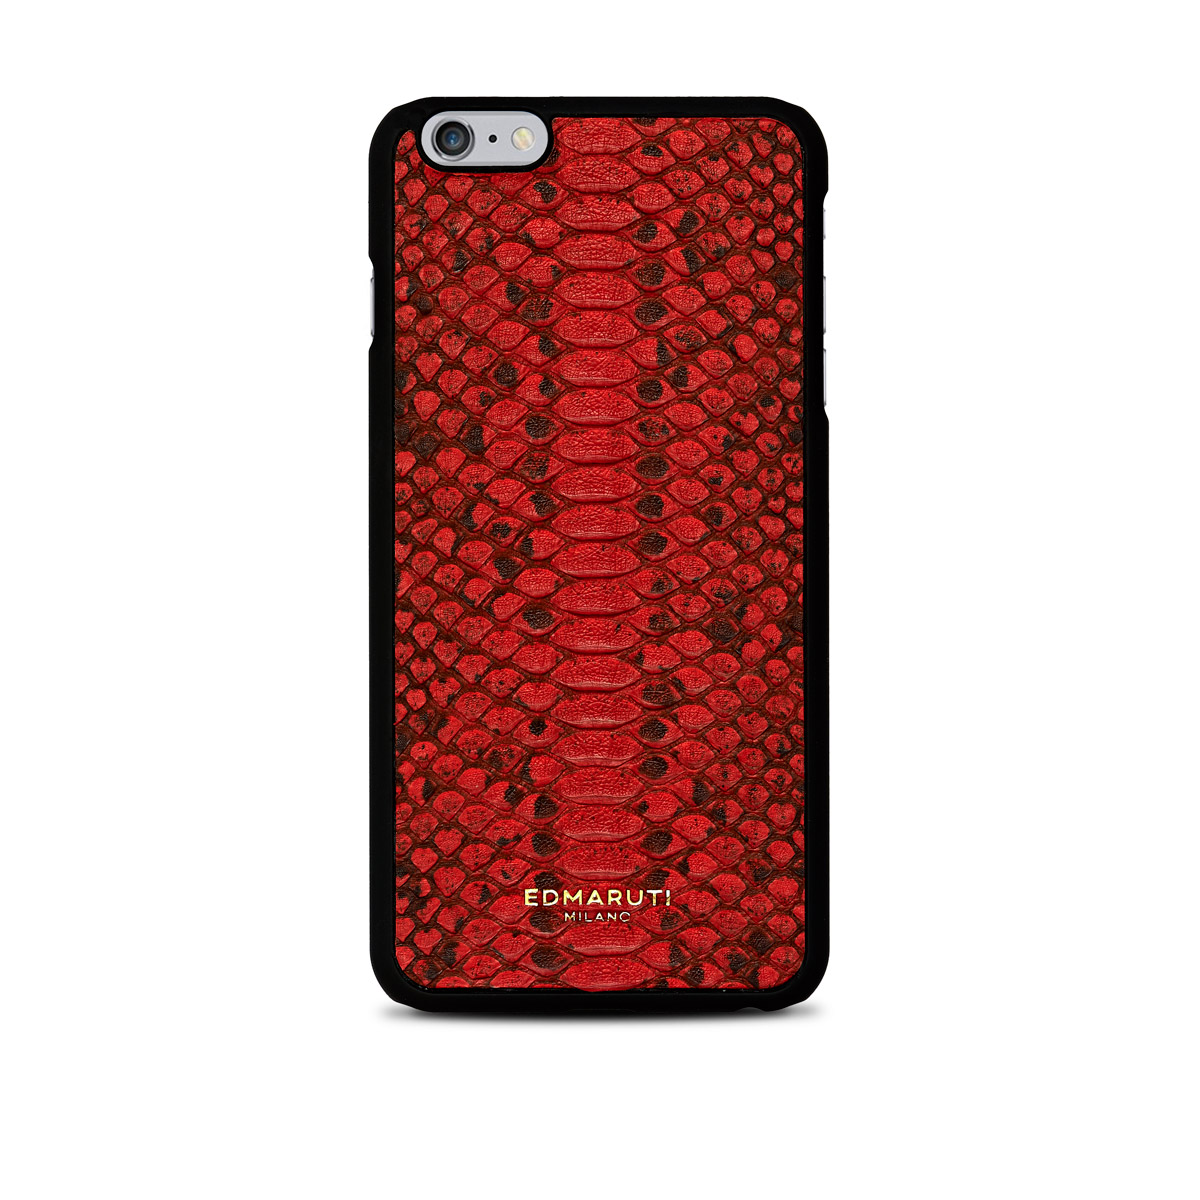 iphone 6s plus case python red edmaruti. Black Bedroom Furniture Sets. Home Design Ideas